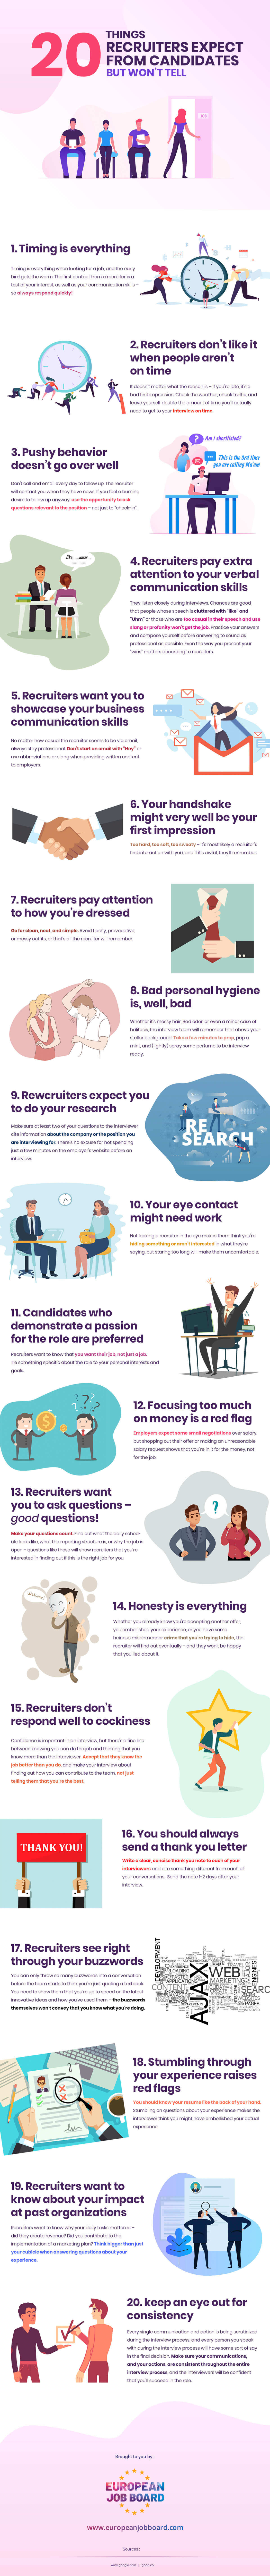 Top 20 Things Recruiters Want from the Candidates